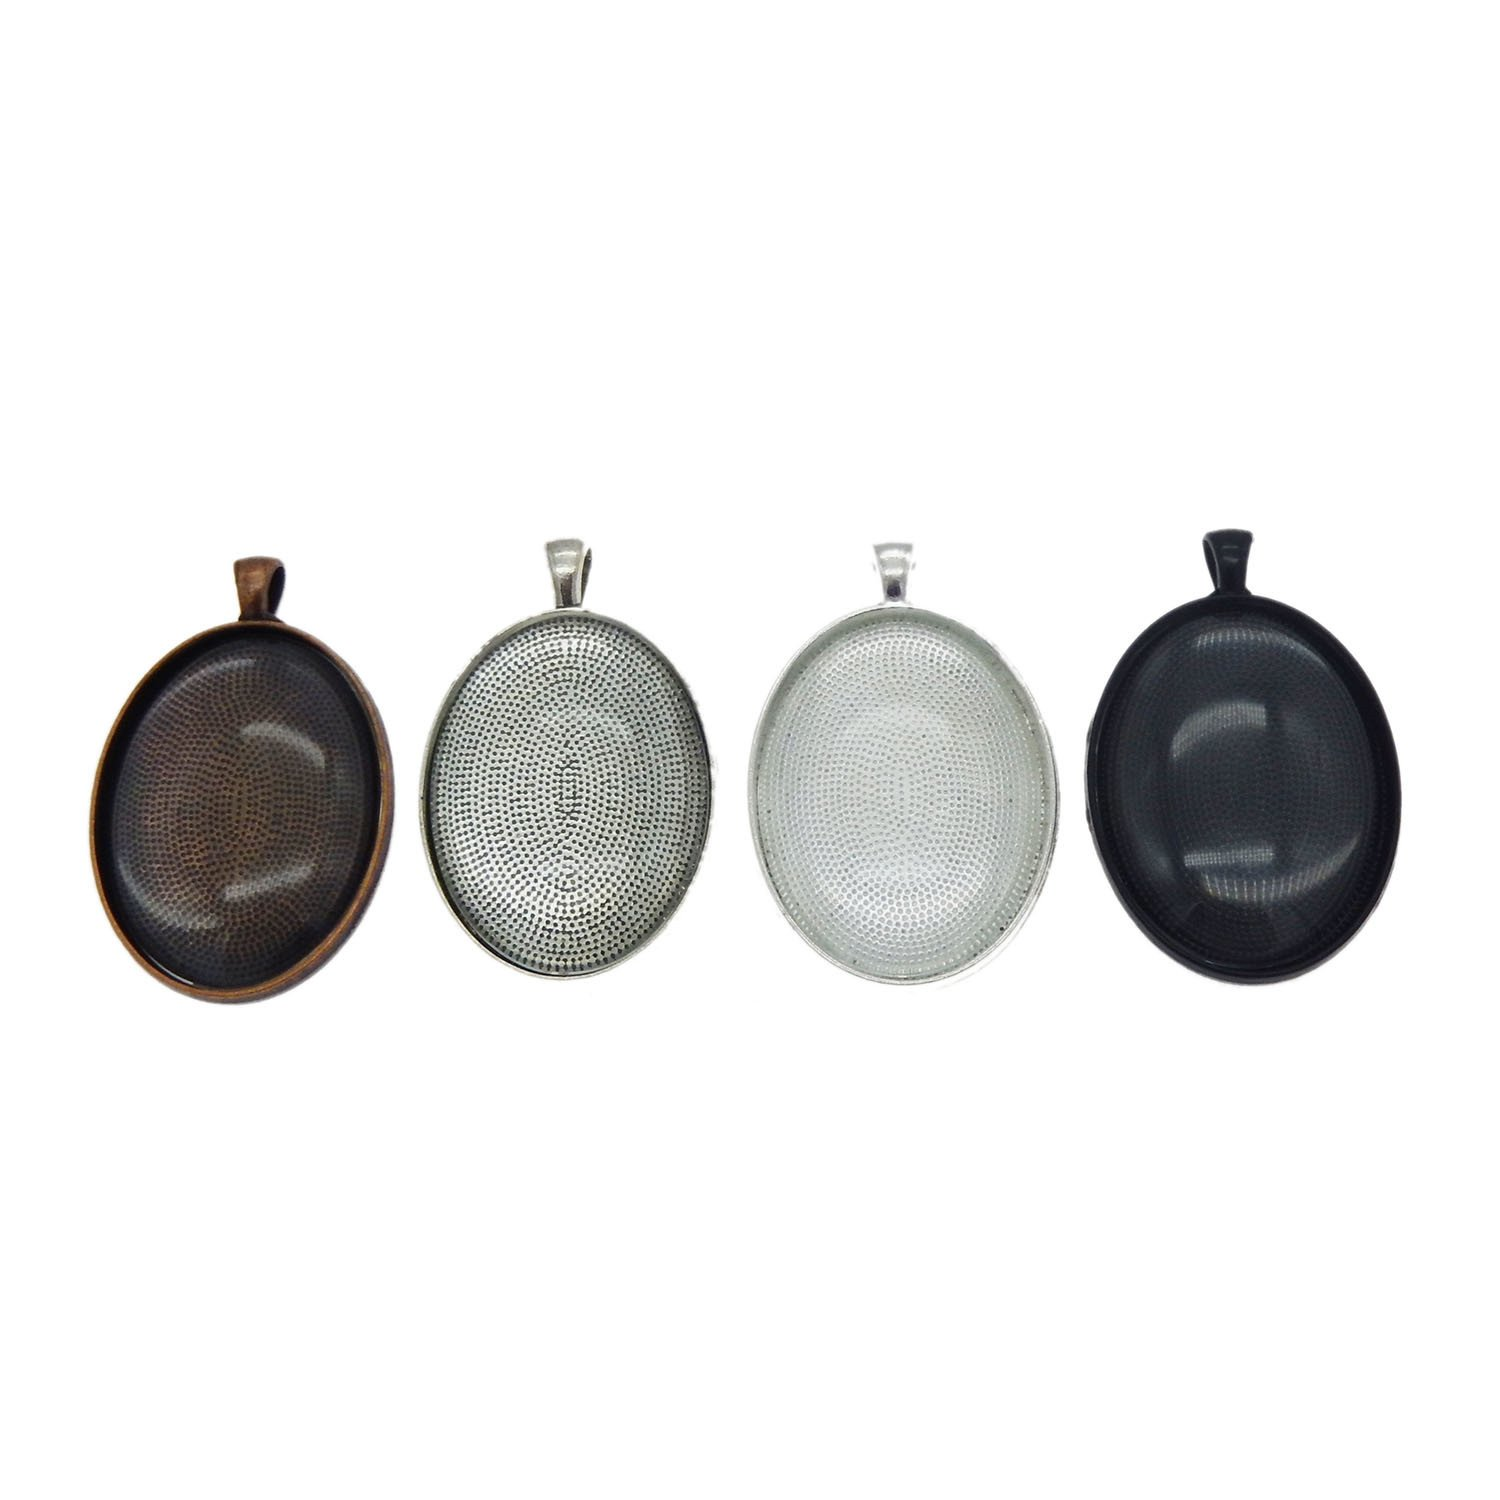 GraceAngie 8 Sets Mixed Oval Setting Tray Pendant with Glass Cabochons Black Bronze Silver for Jewelry Making